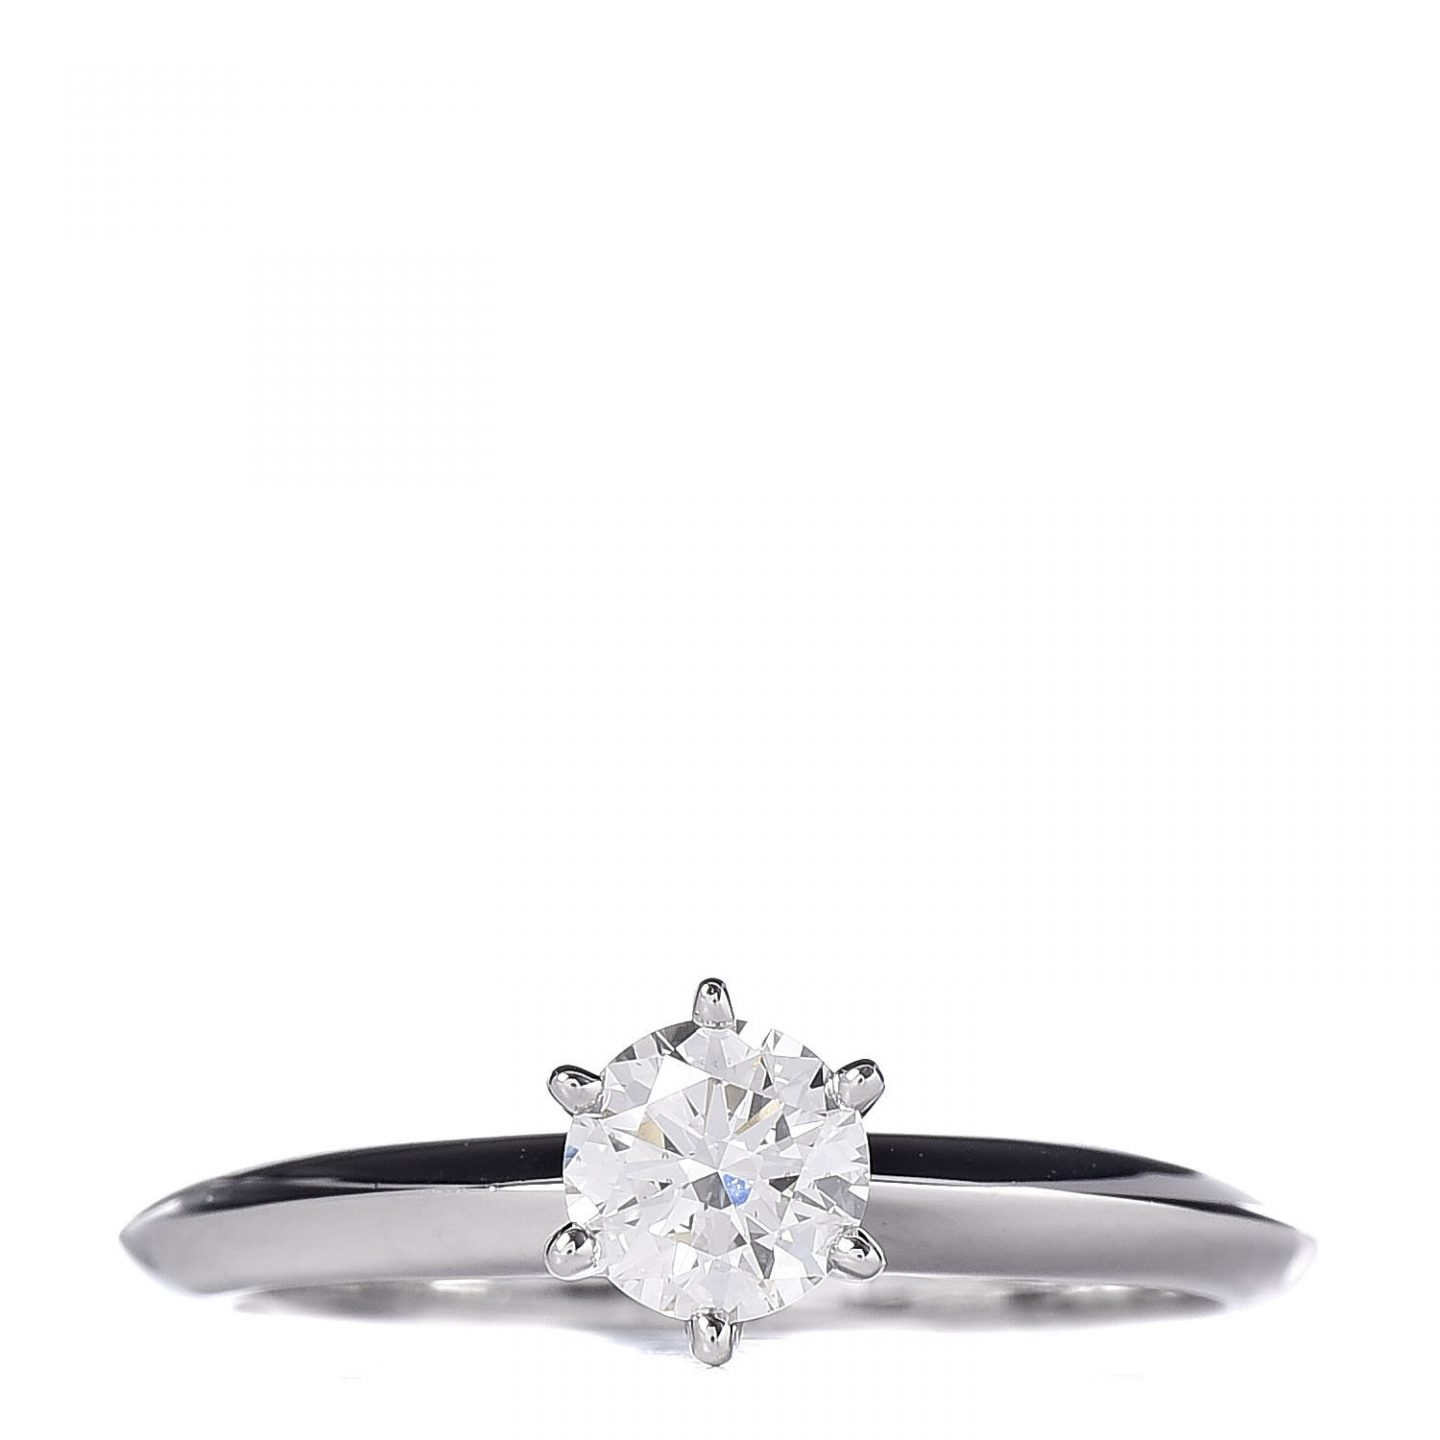 Tiffany Solitaire Engagement Ring for Cartier vs. Tiffany